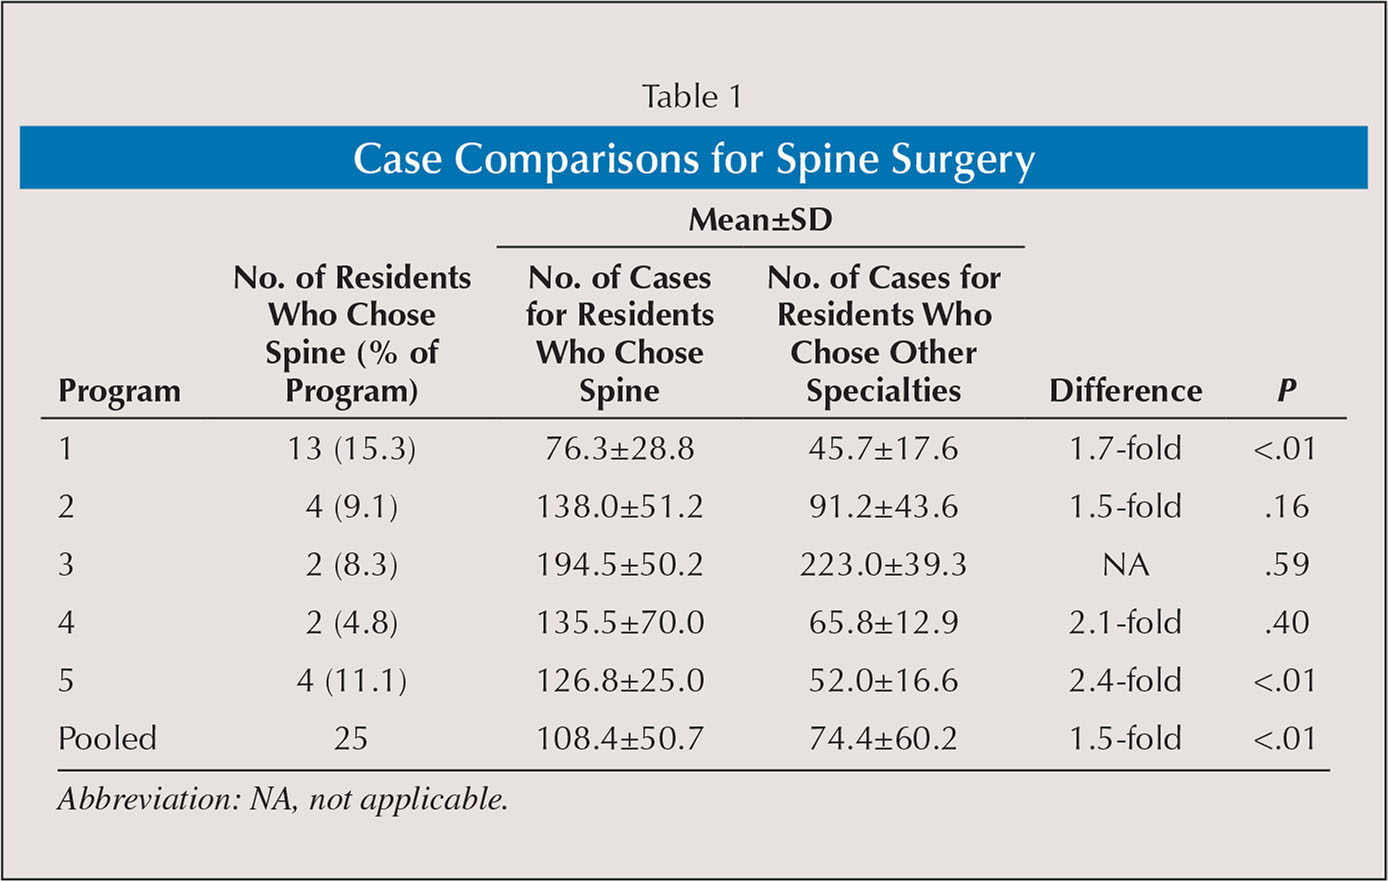 Case Comparisons for Spine Surgery